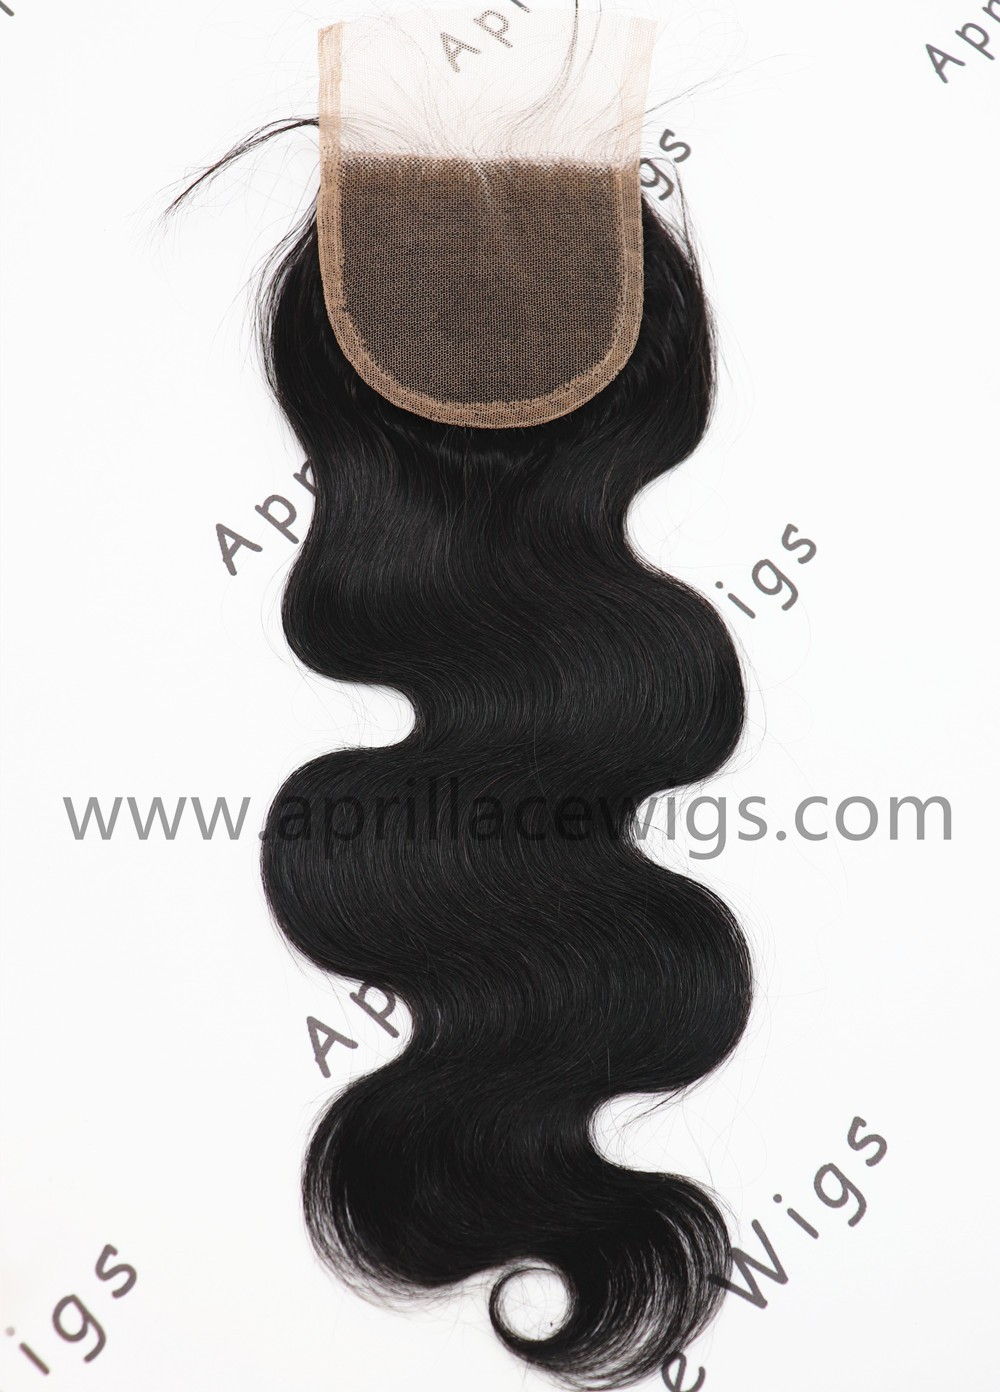 100% virgin human hair body wave lace closure